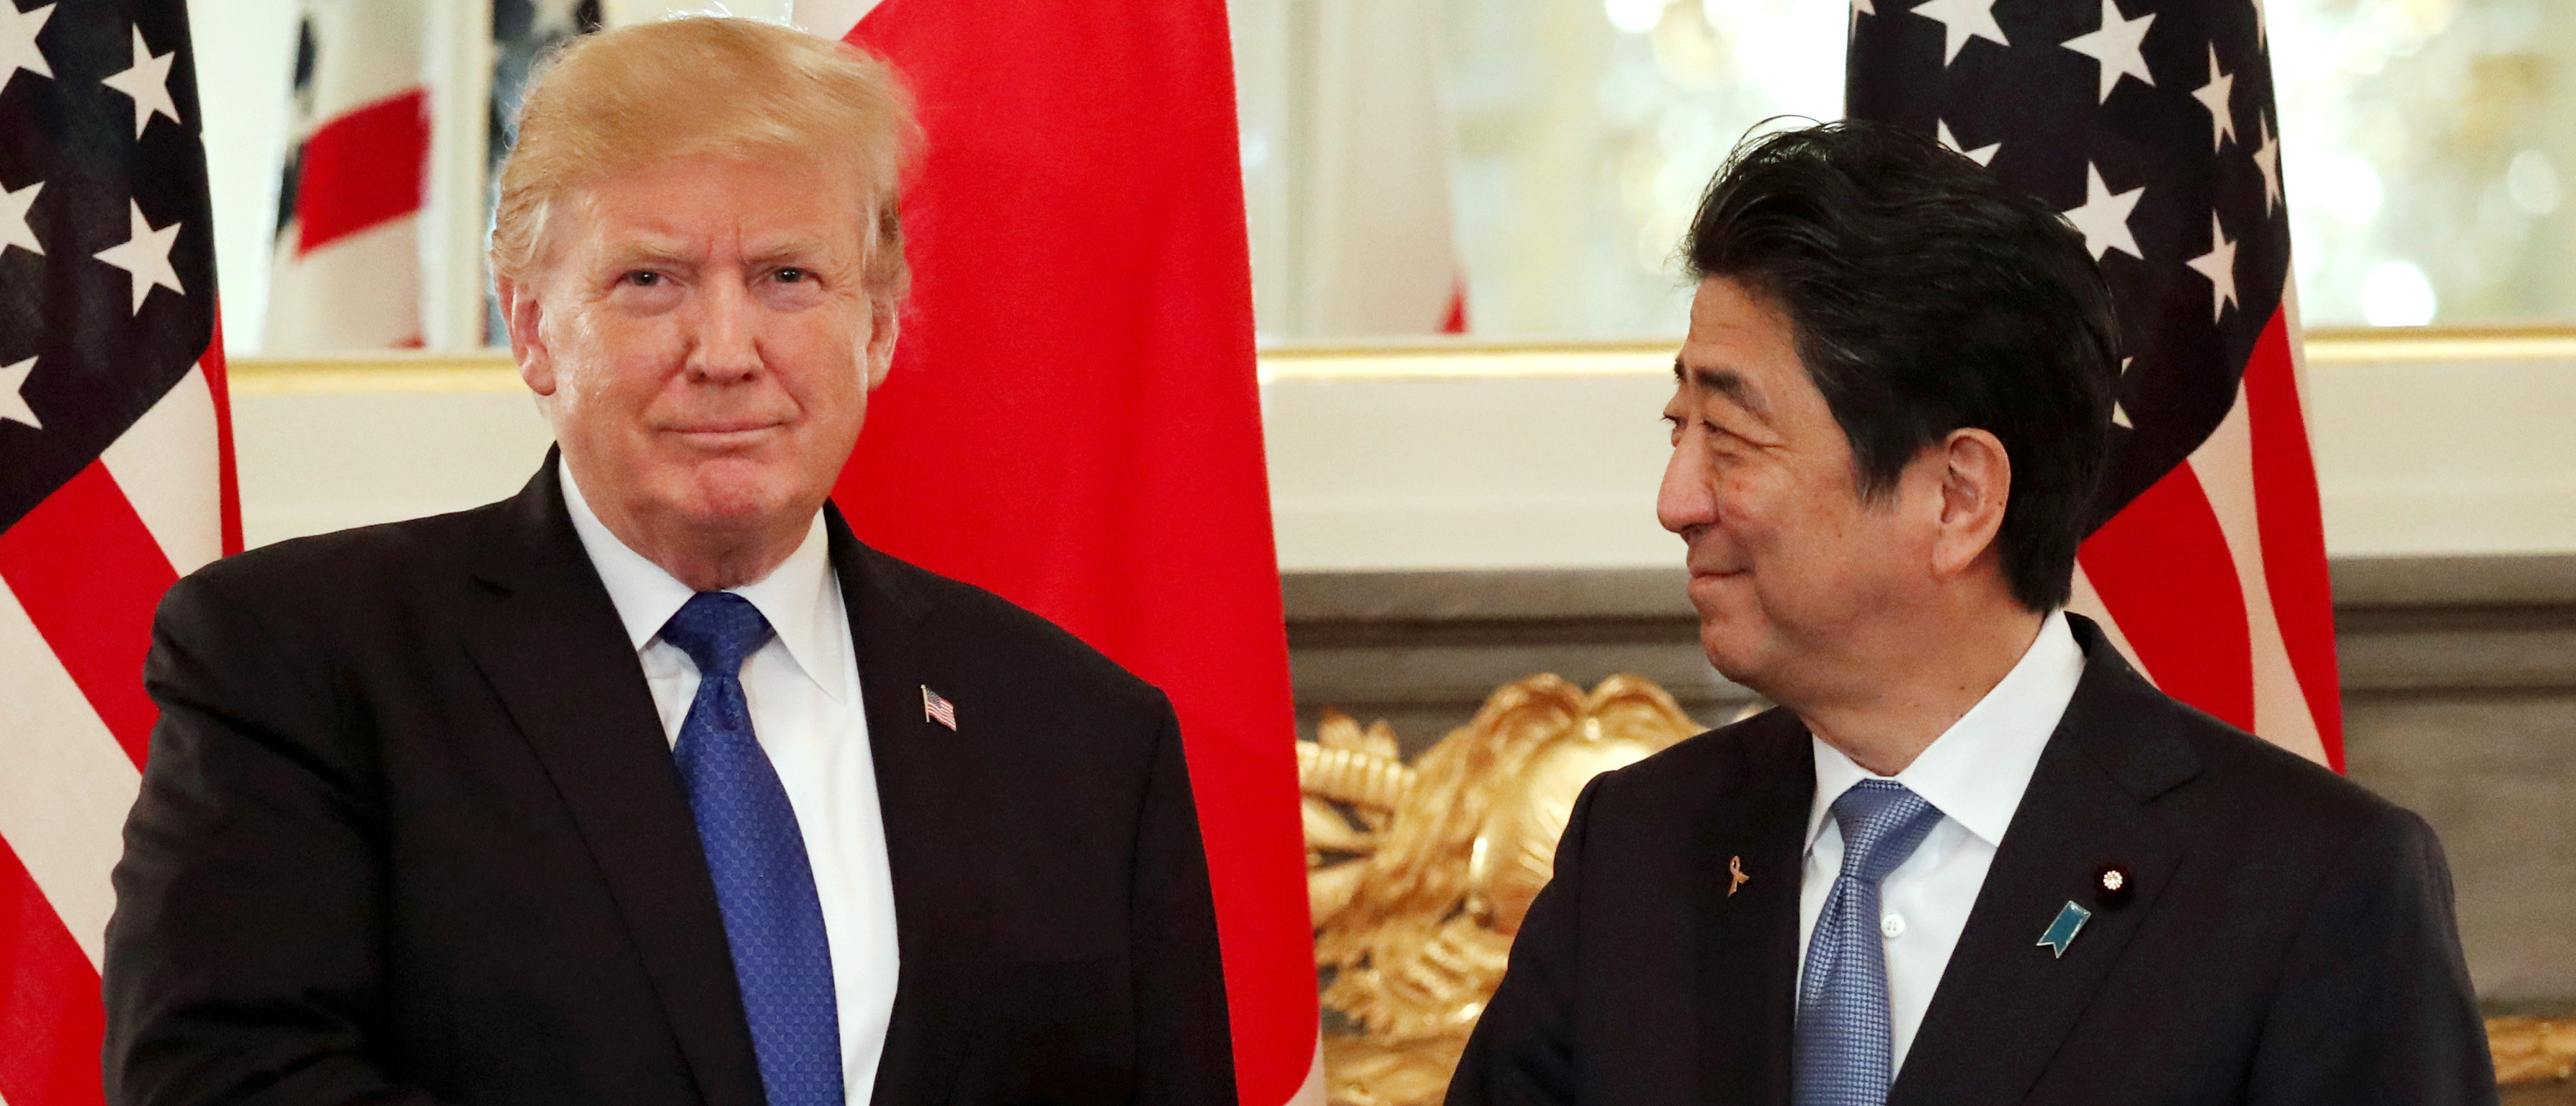 U.S. President Donald Trump and Japan's Prime Minister Shinzo Abe shake hands before a working lunch at Akasaka Palace in Tokyo, Japan November 6, 2017. REUTERS/Jonathan Ernst